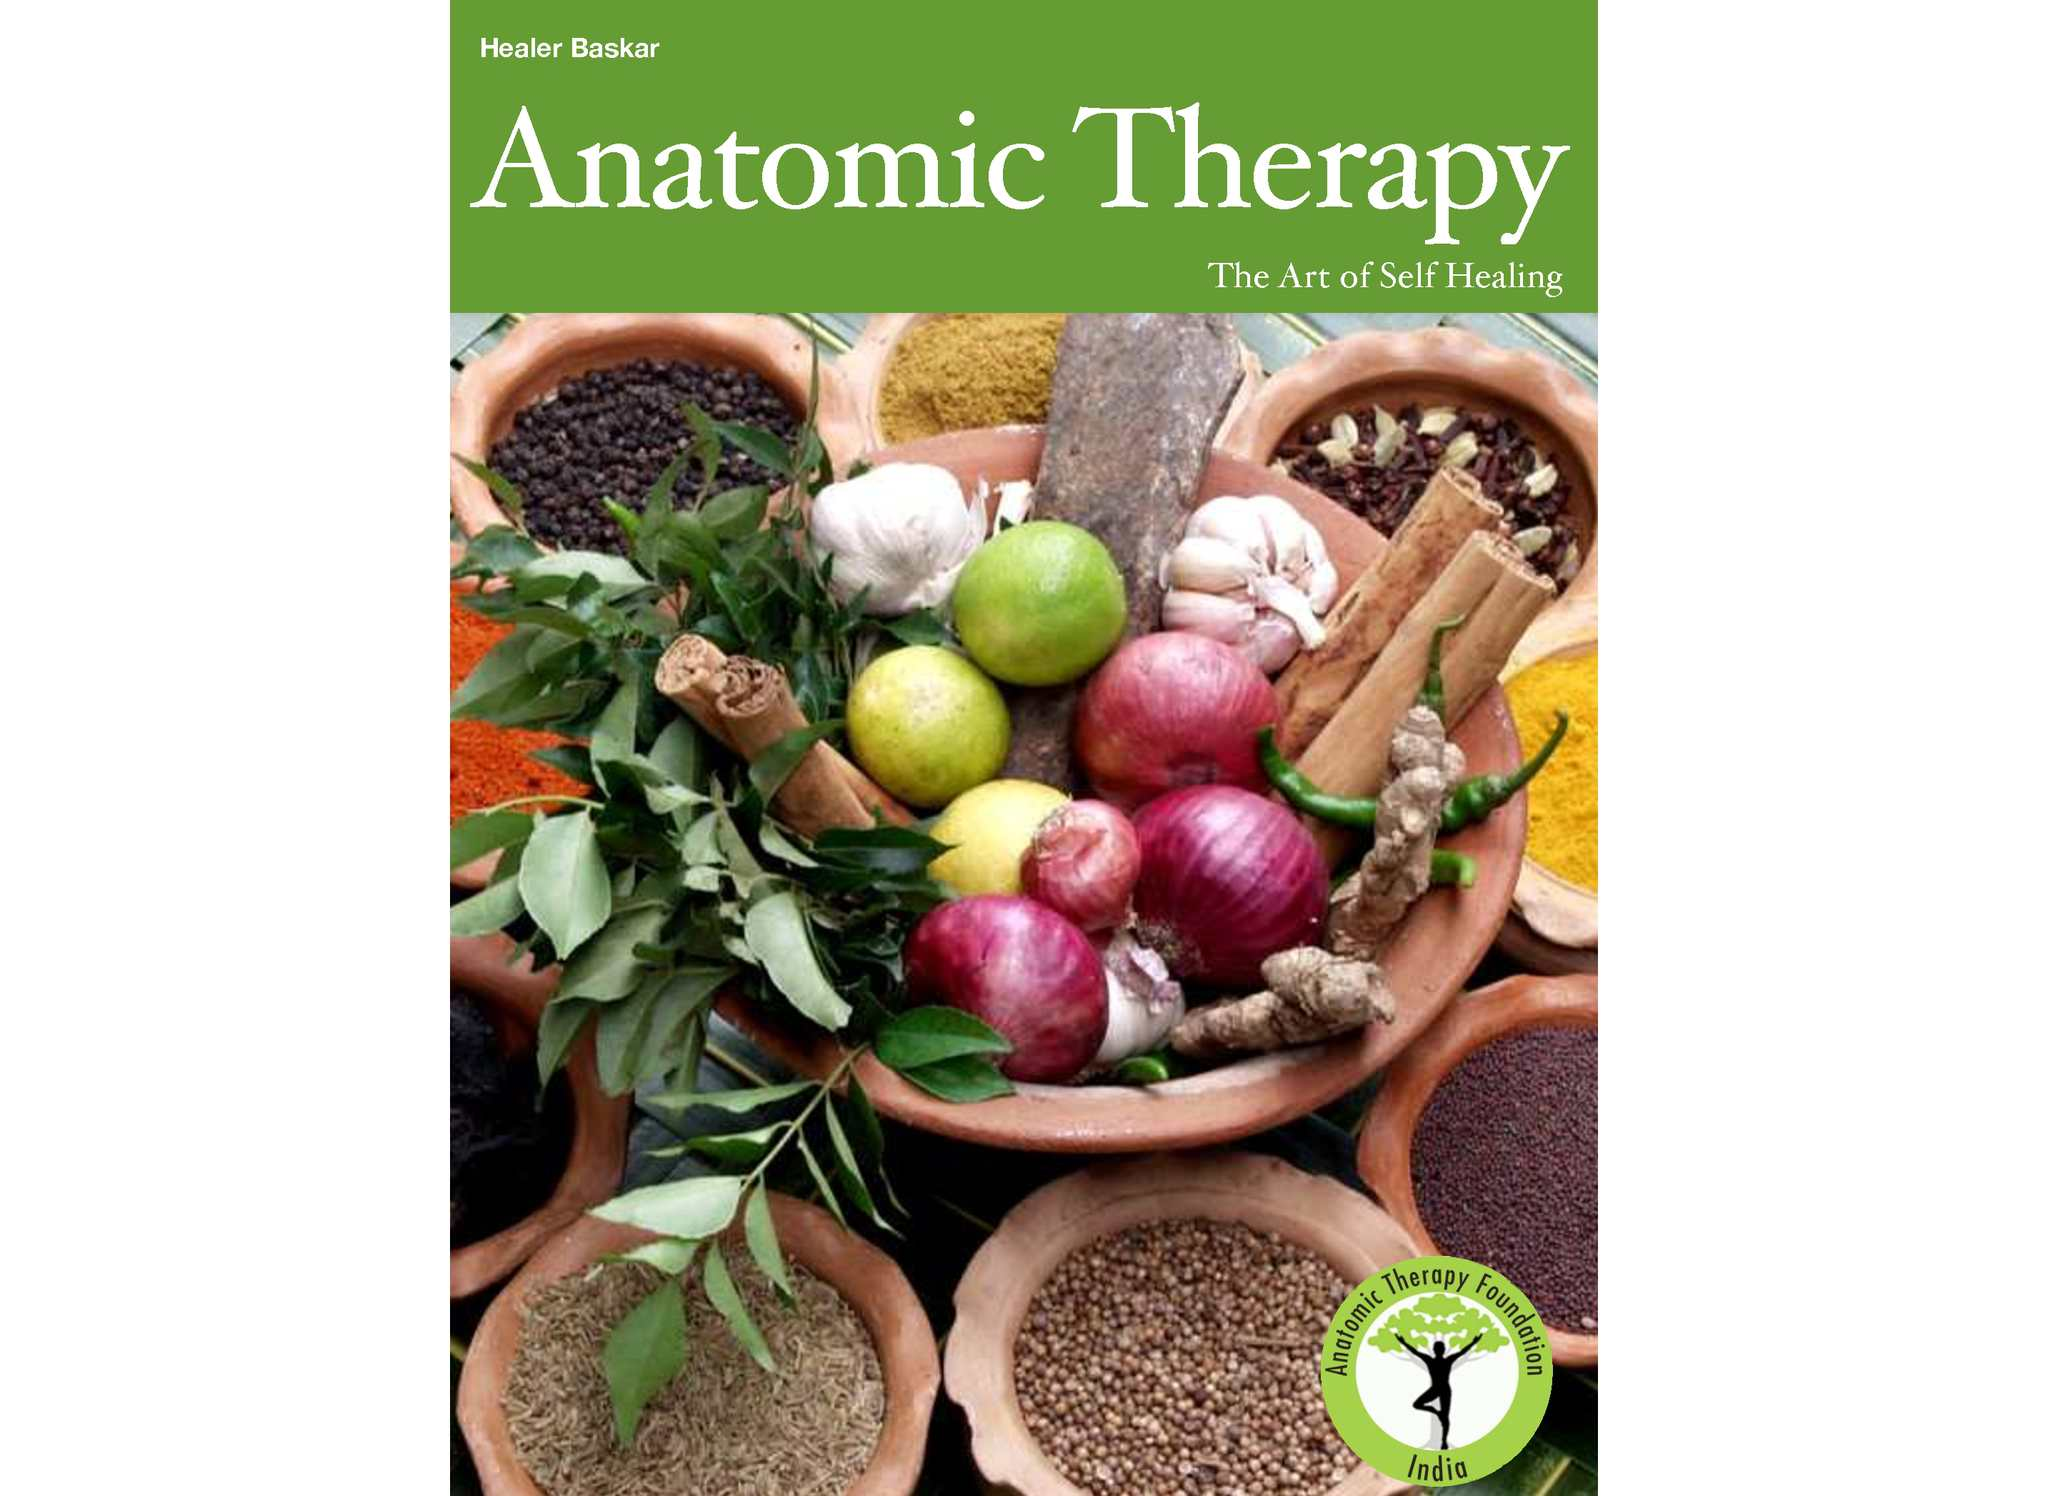 Calaméo - Anatomic Therapy - The Art of Self-Healing